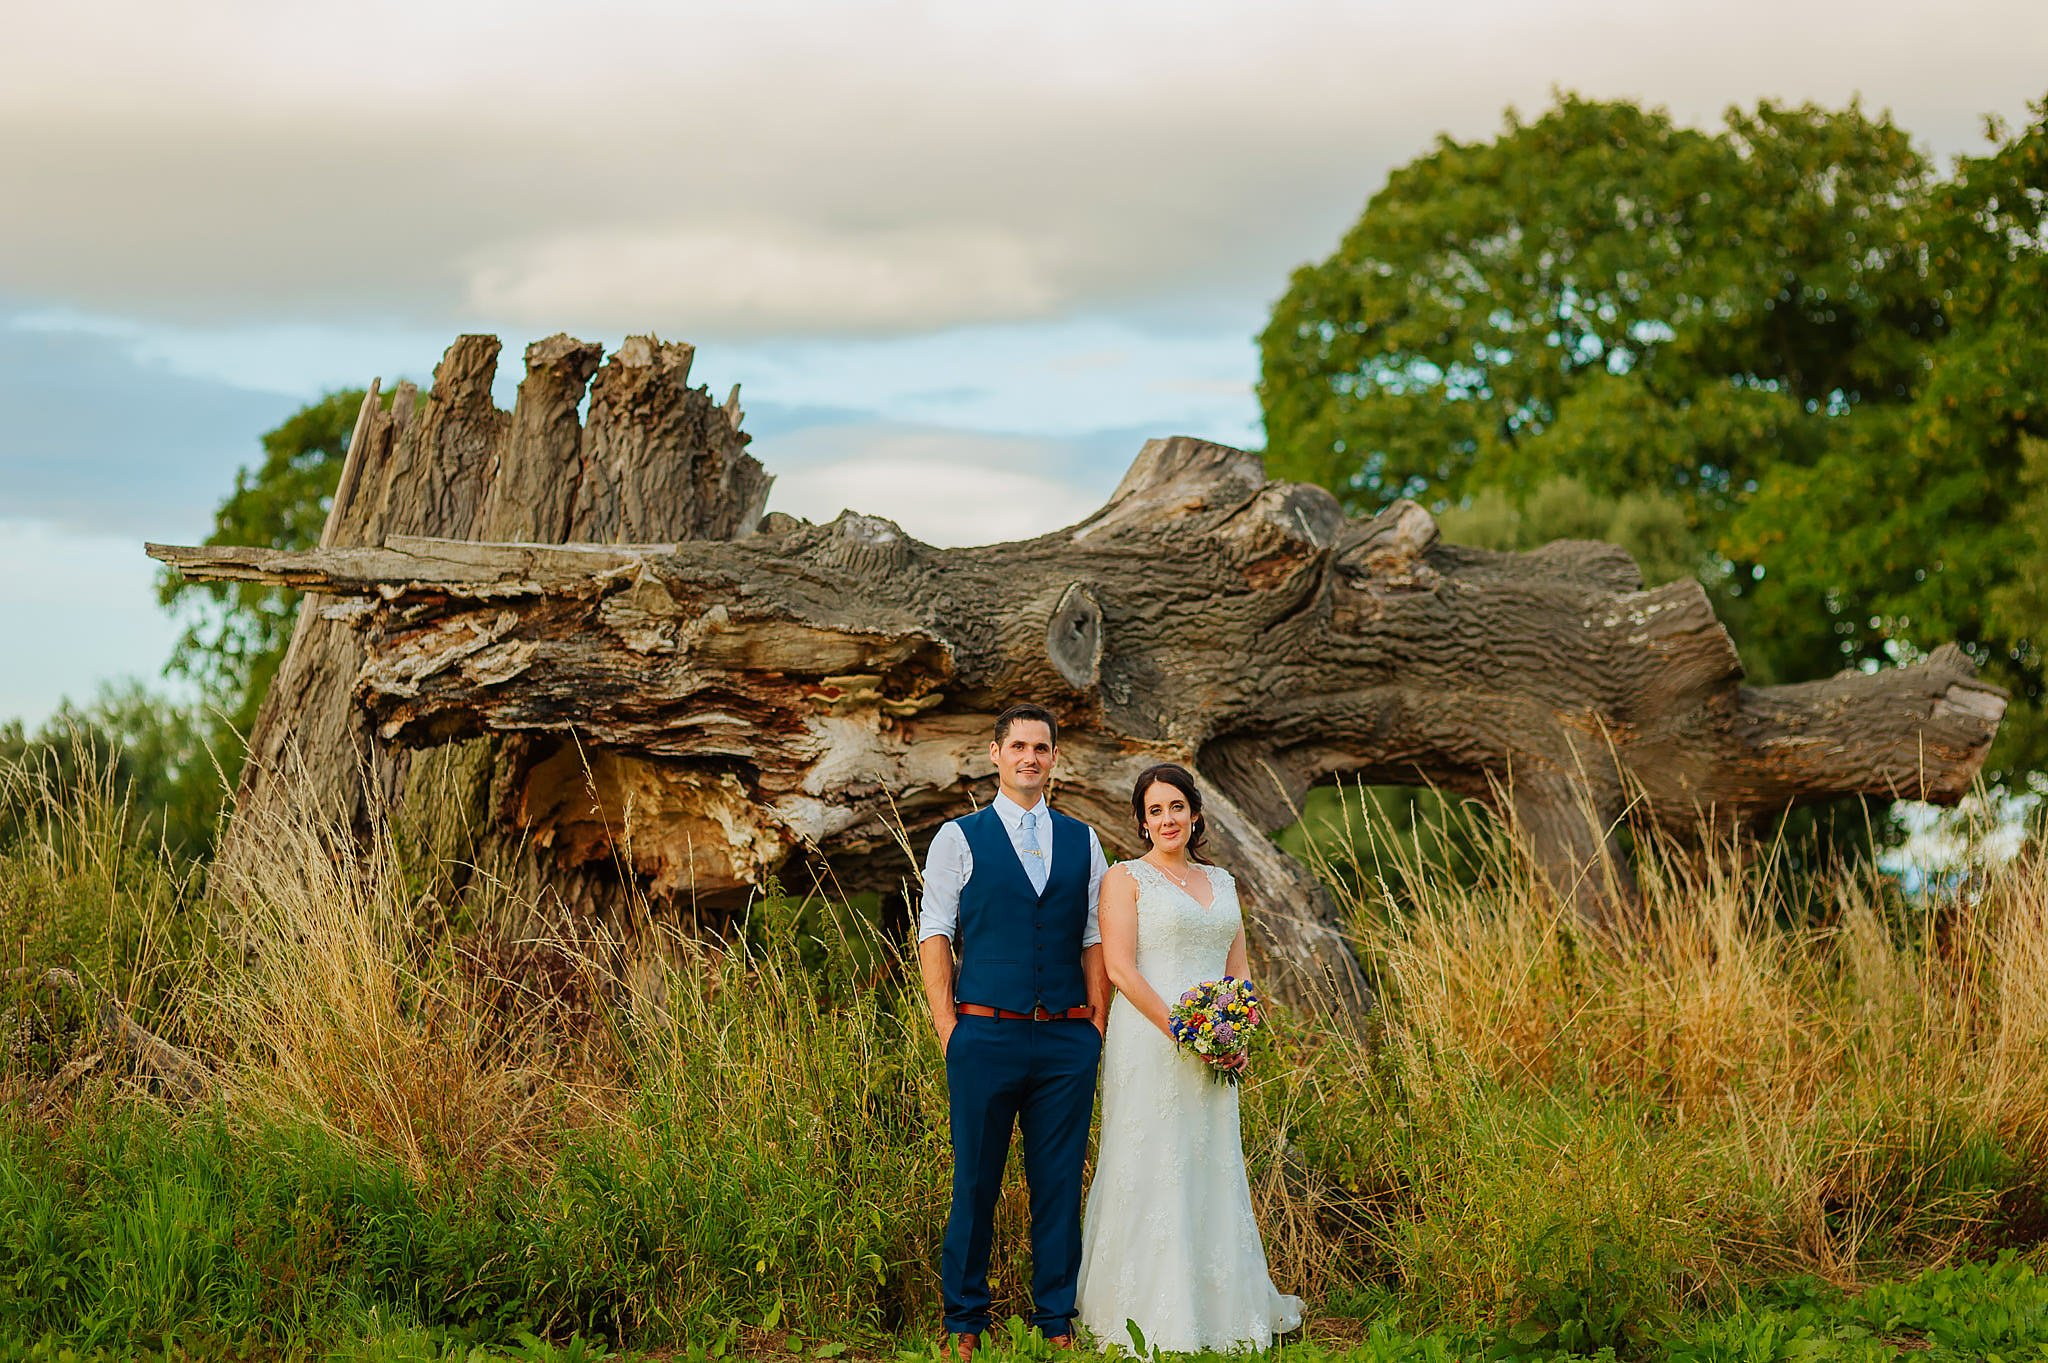 Wedding photography at Hellens Manor in Herefordshire, West Midlands | Shelley + Ian 115